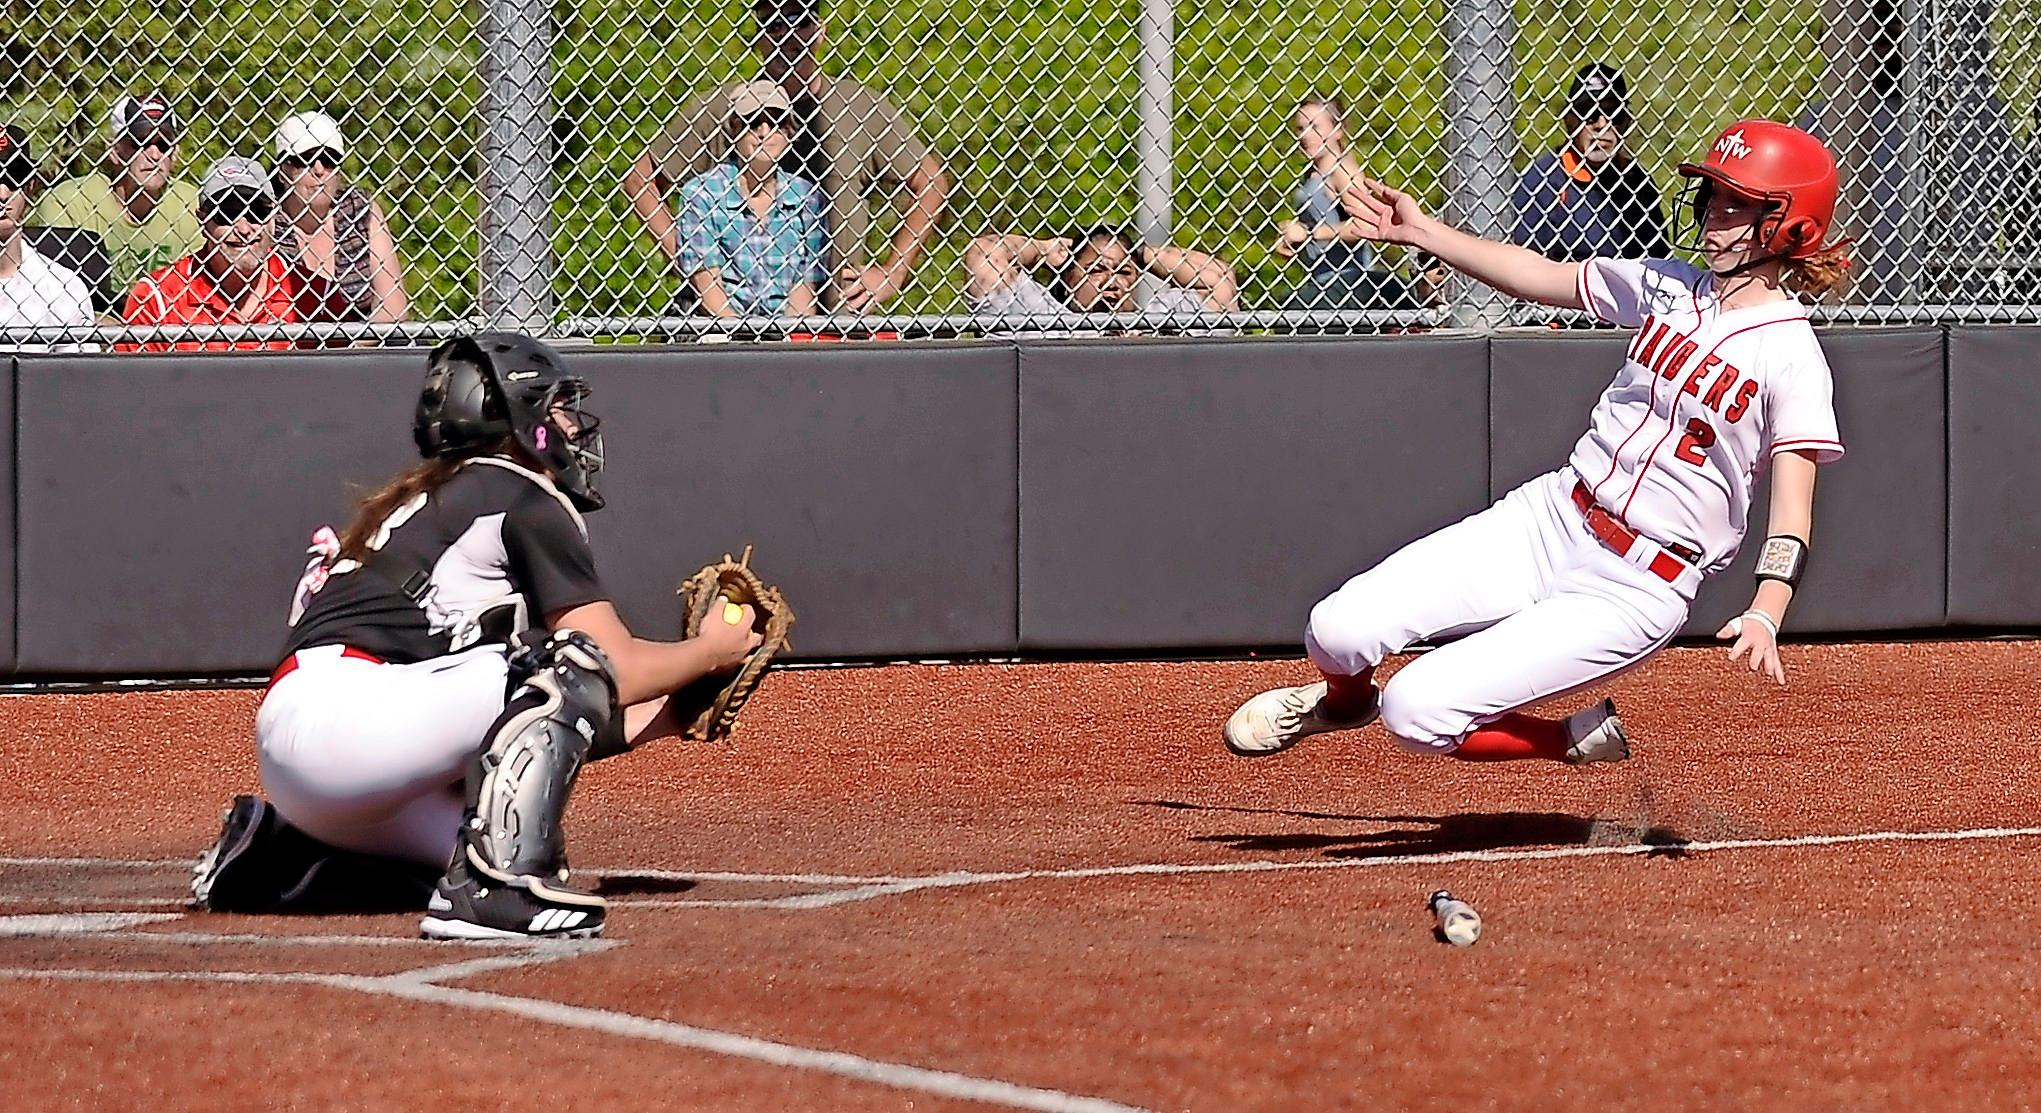 Andy Atkinso/Daily TidingsSouthern Oregon University senior catcher Harlee Donovan awaits the tag to Northwestern's Emily Bosch sliding into home plate in the top of the fourth inning.